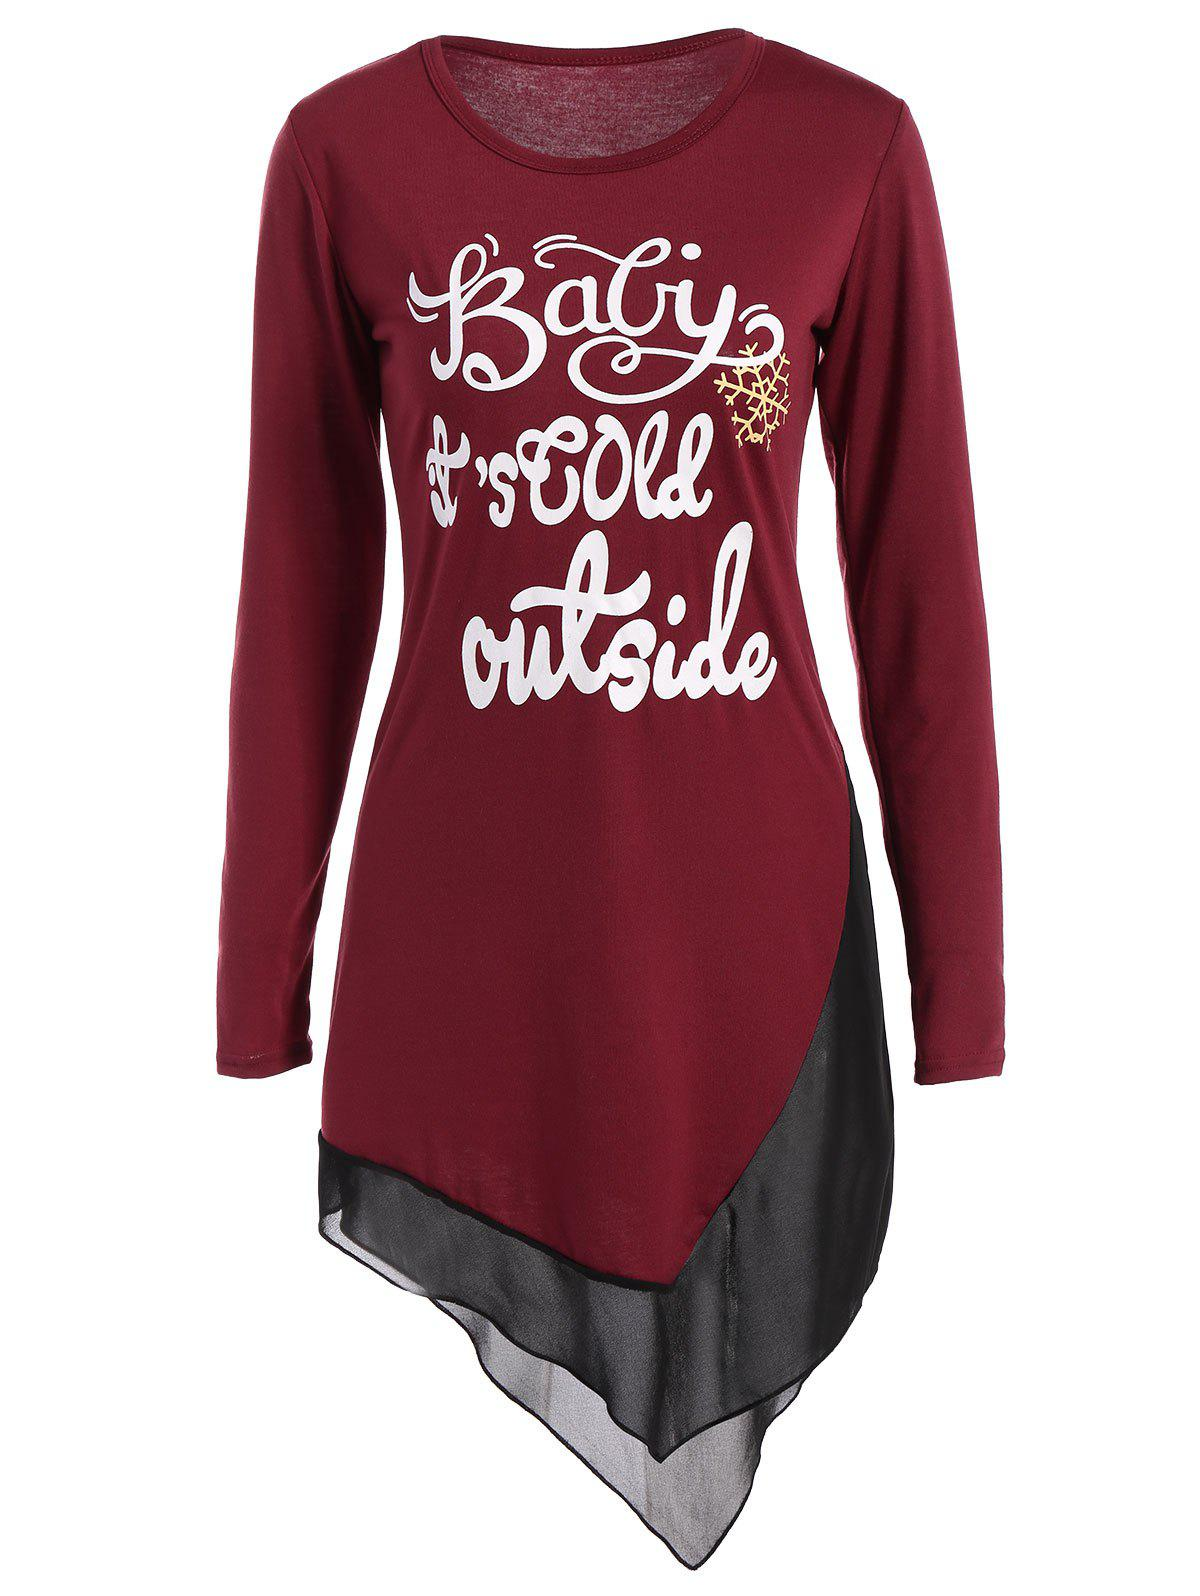 Asymmetrical Graphic Layered Longline TeeWOMEN<br><br>Size: XL; Color: WINE RED; Material: Cotton,Polyester; Sleeve Length: Full; Collar: Jewel Neck; Style: Fashion; Pattern Type: Letter; Season: Fall,Spring,Winter; Weight: 0.370kg; Package Contents: 1 x Tee;